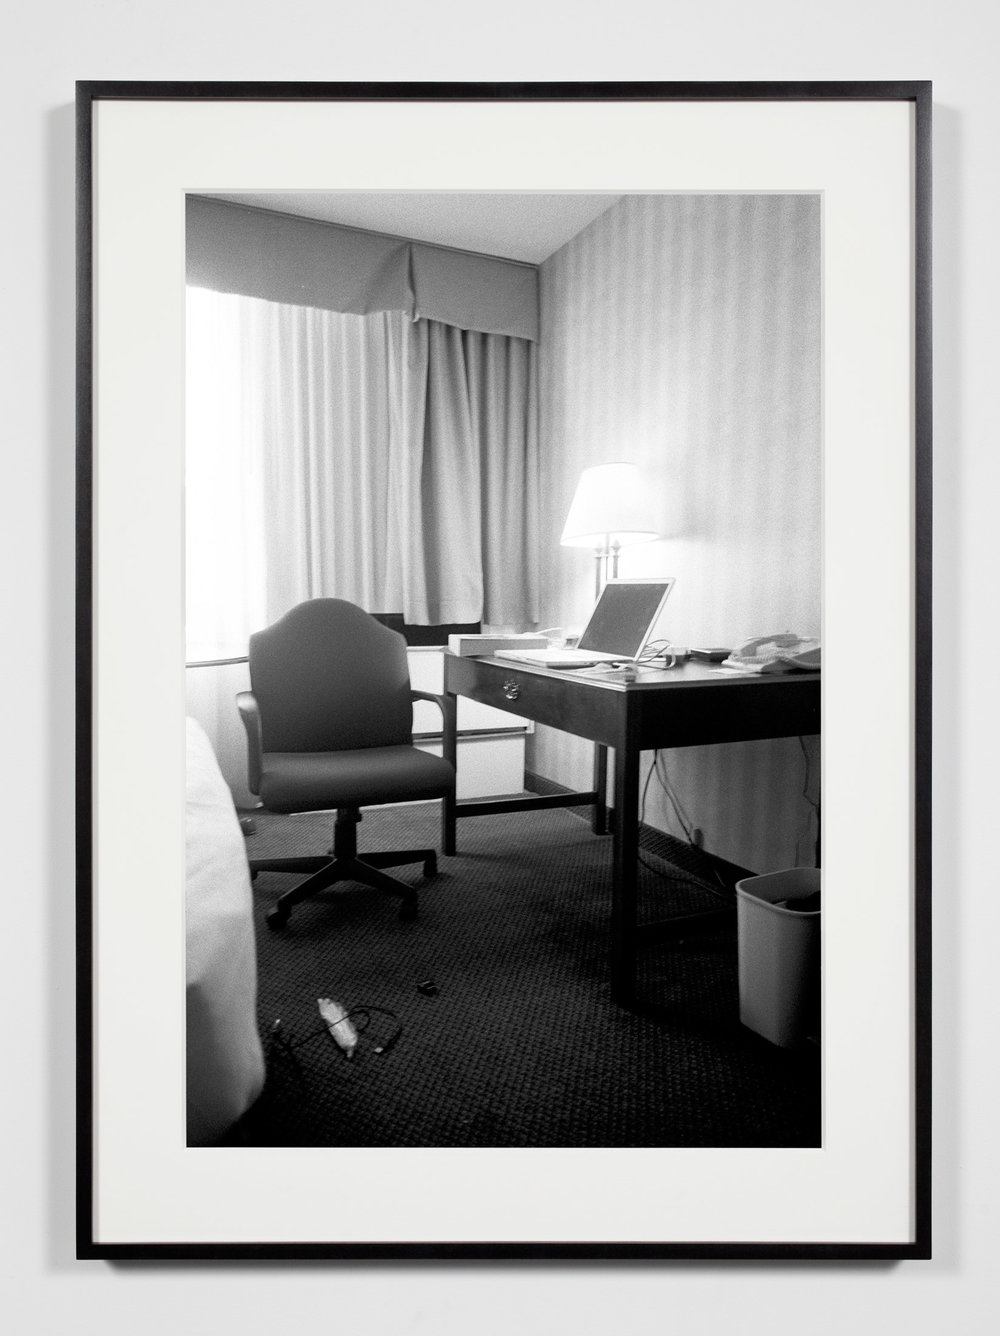 Hotel Room, Washington, District of Columbia, April 24, 2009   2011  Epson Ultrachrome K3 archival ink jet print on Hahnemühle Photo Rag paper  36 3/8 x 26 3/8 inches   Industrial Portraits, 2008–    A Diagram of Forces, 2011